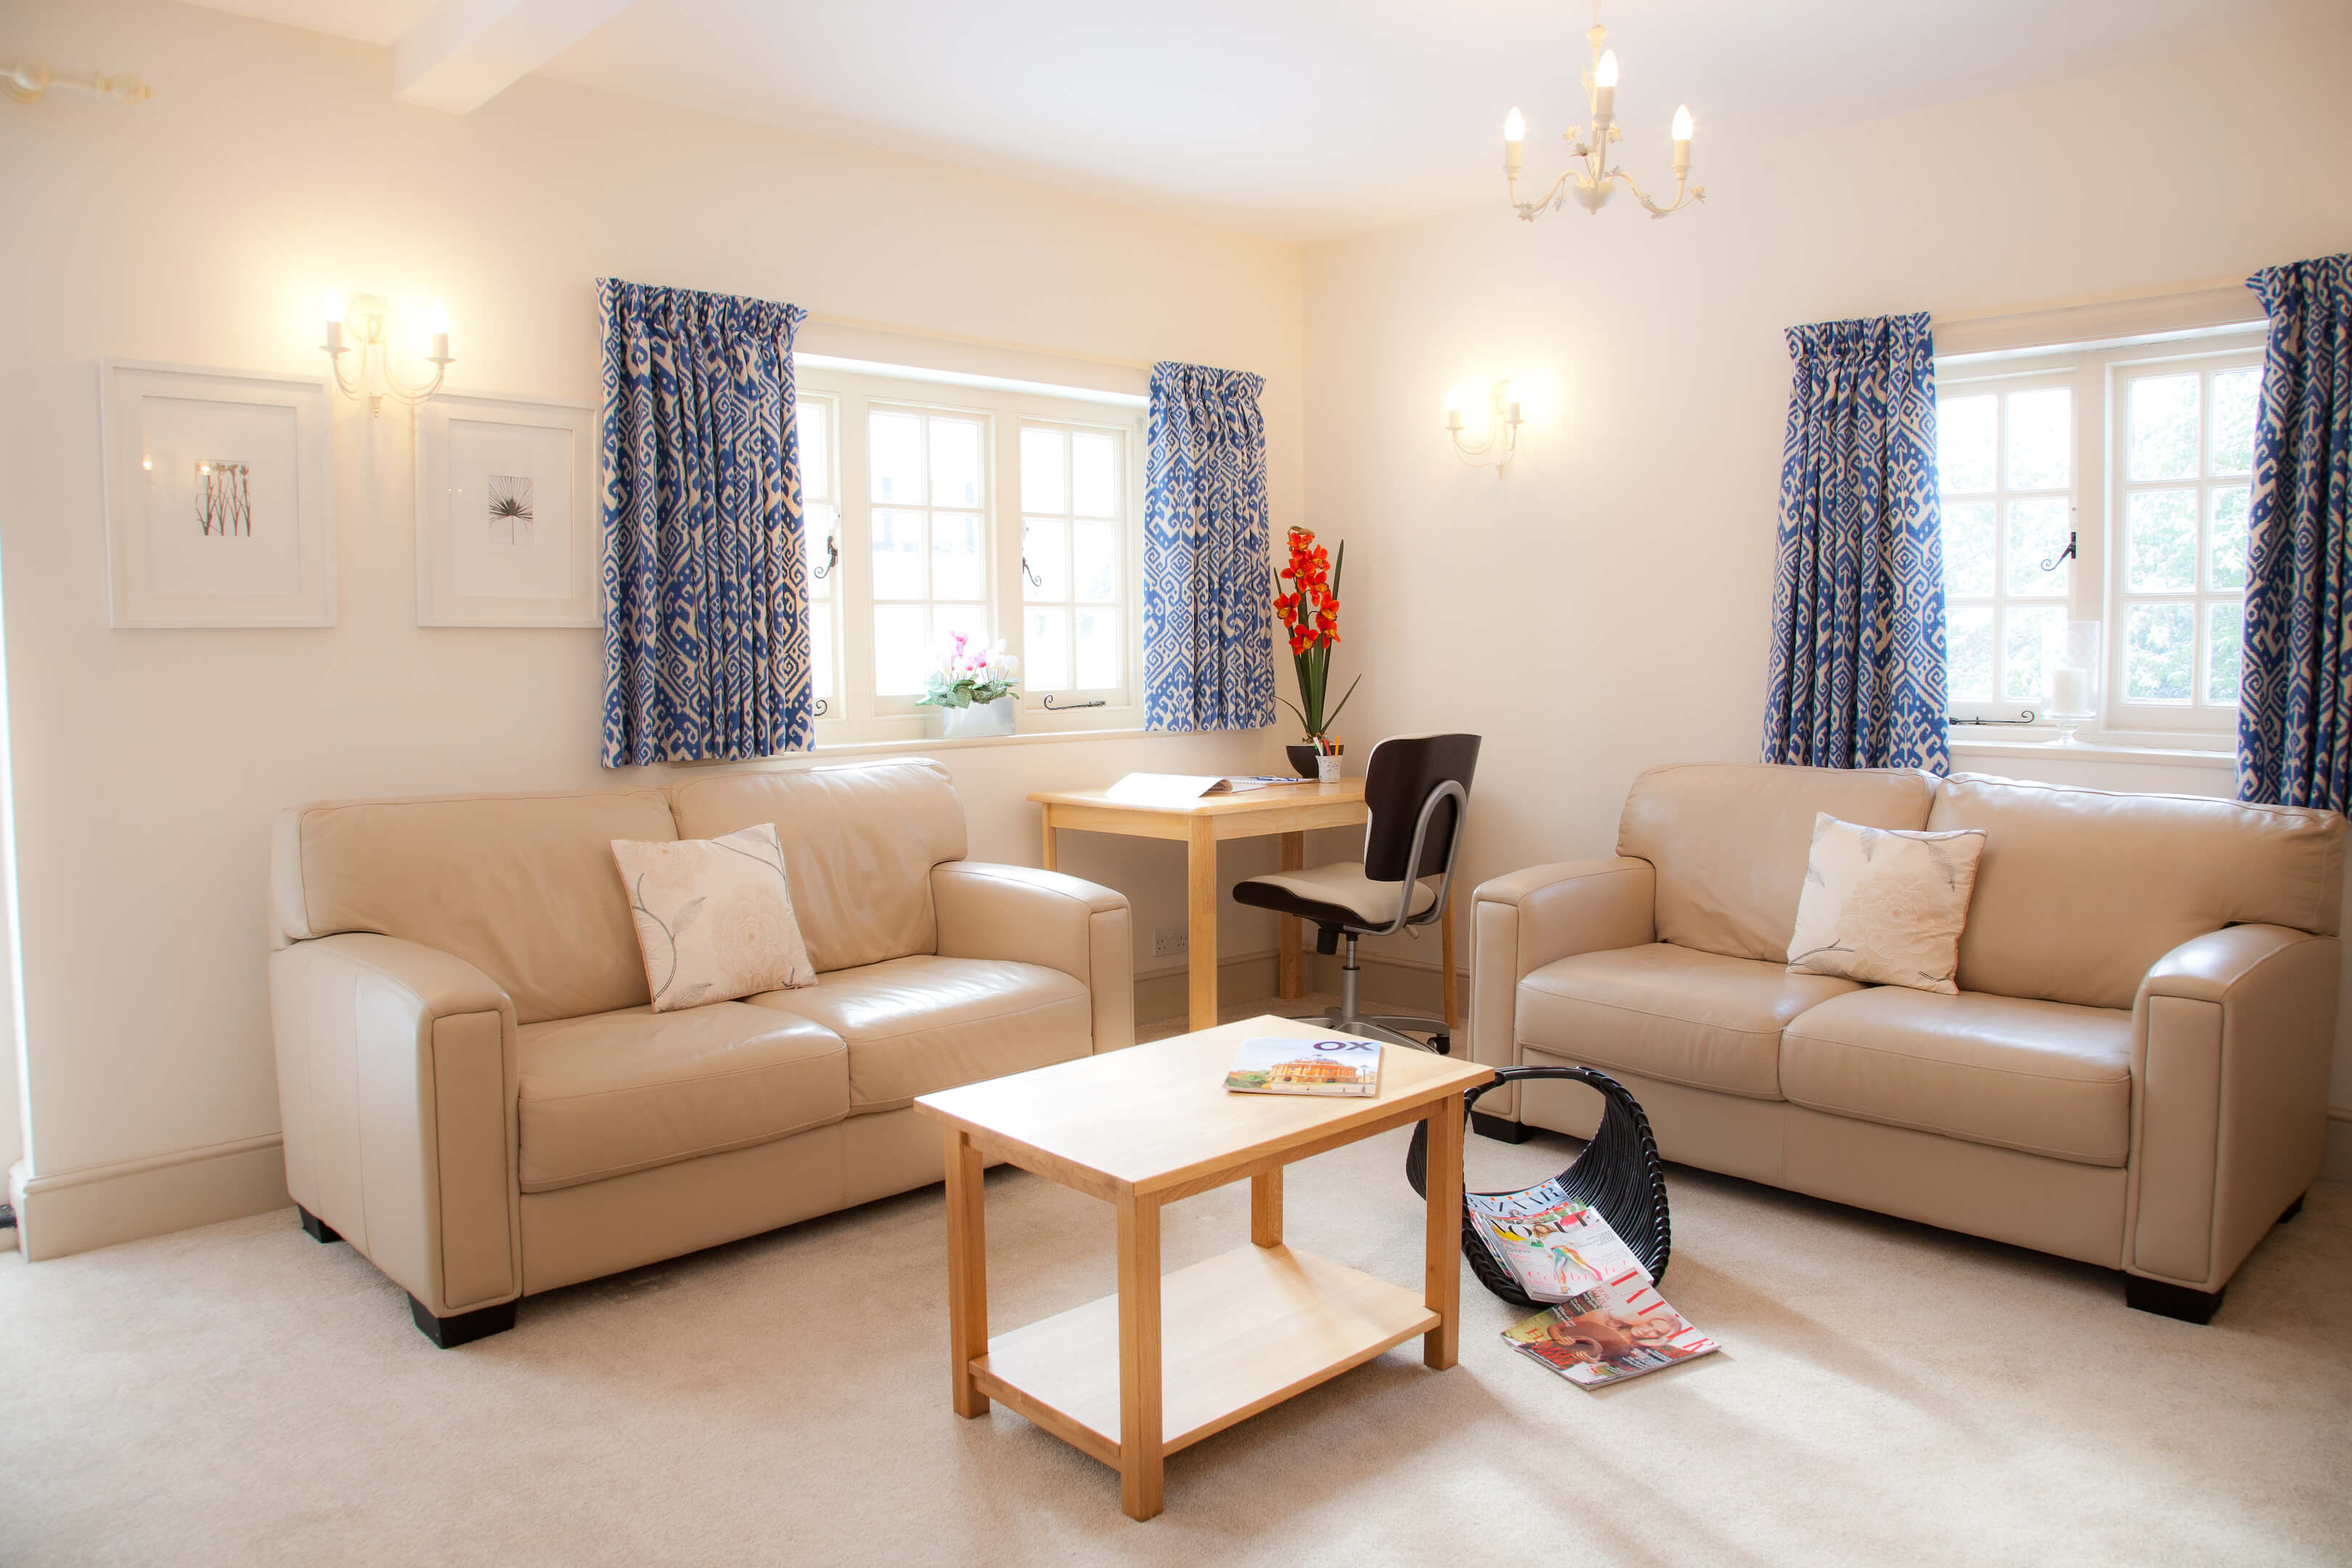 Oxford Shortlet Self Catering Apartment Doubleroom Beech Cottage 18